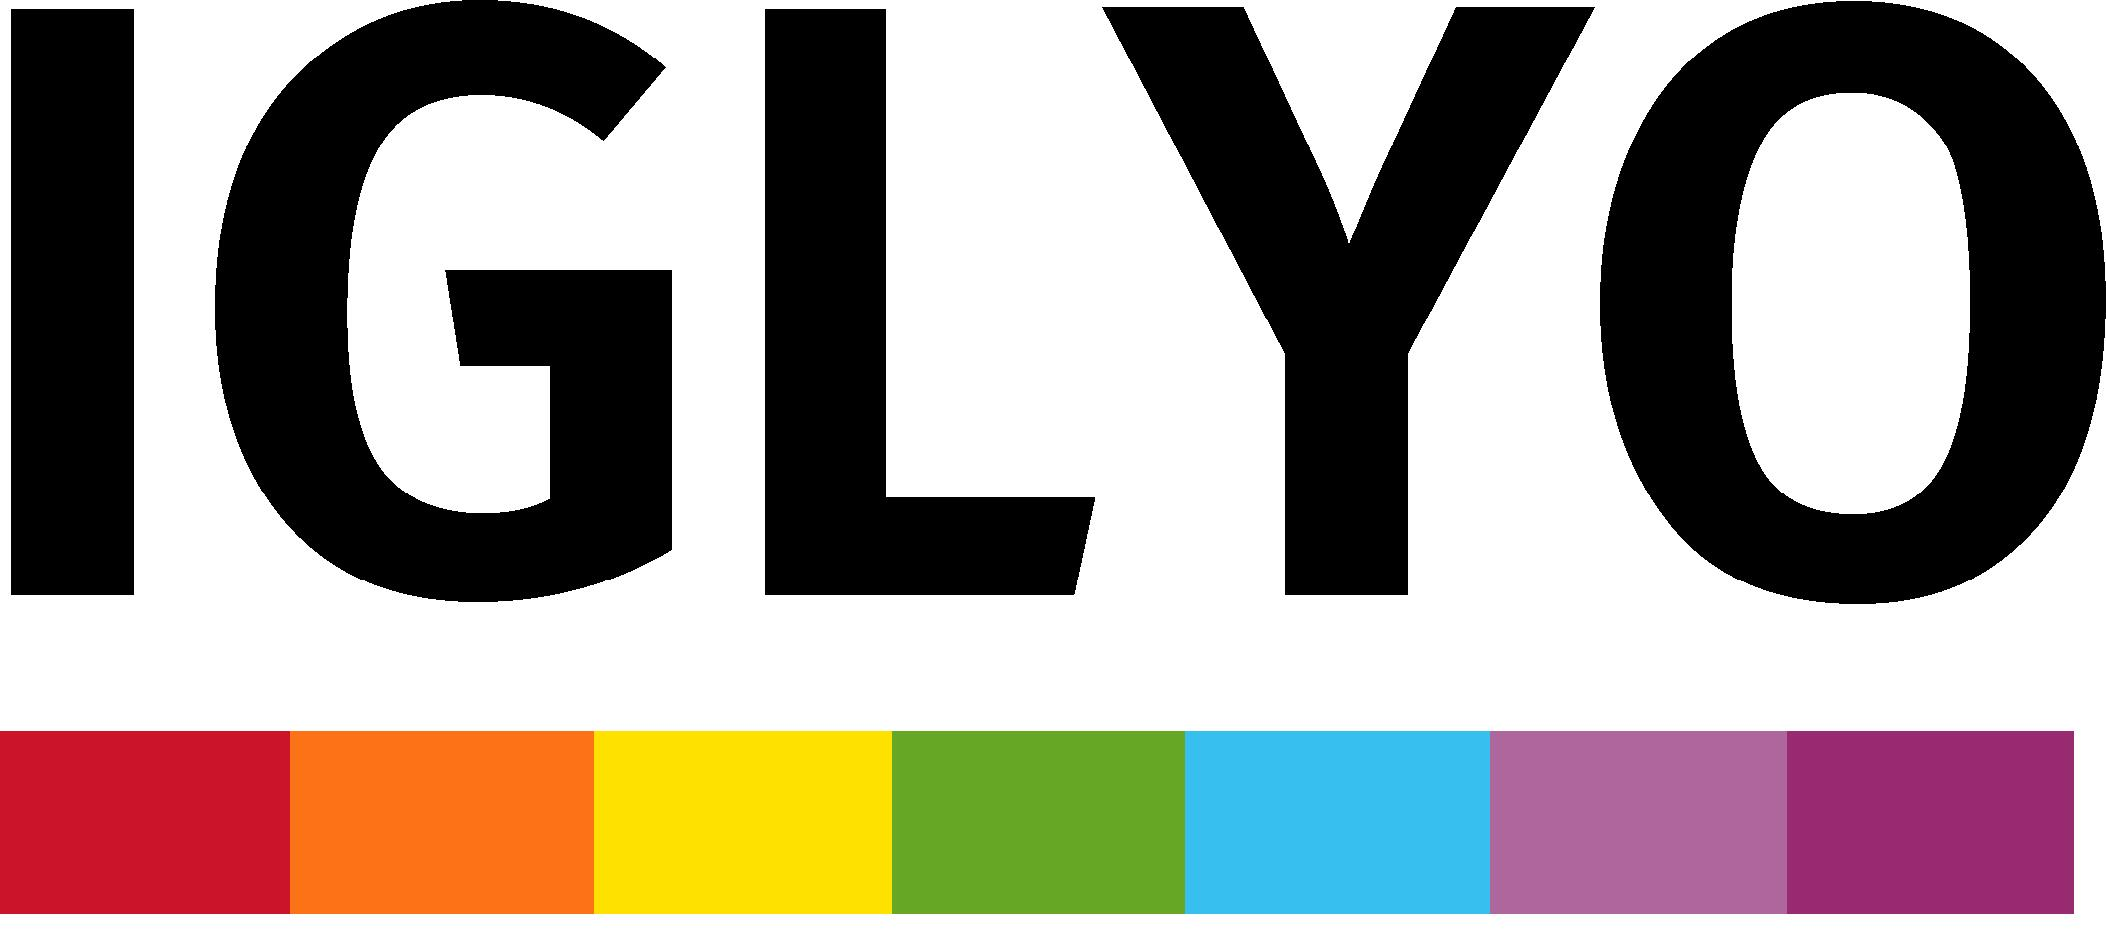 logo for International Lesbian, Gay, Bisexual, Transgender, Queer and Intersex Youth and Student Organization